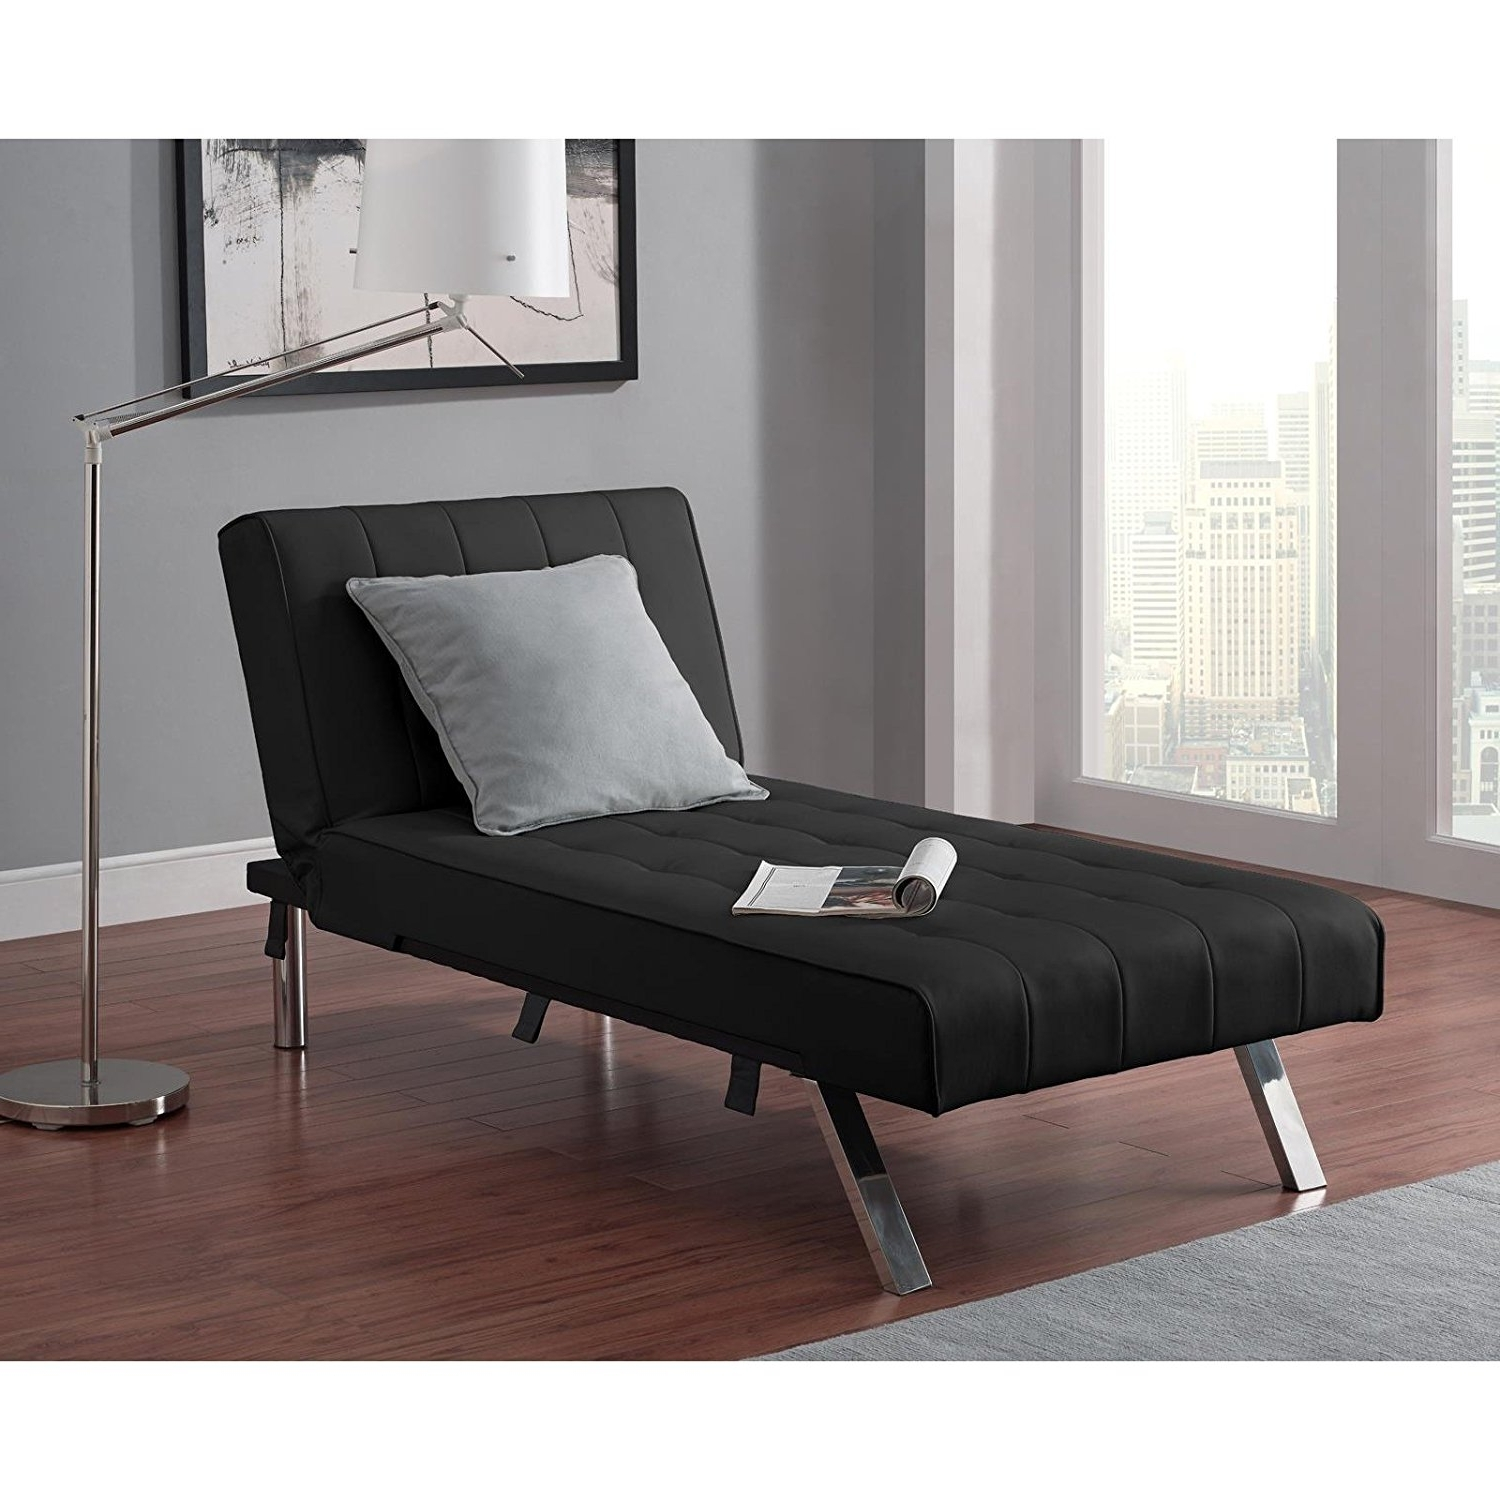 Amazon: Emily Futon With Chaise Lounger Super Bonus Set Black Intended For Latest Futons With Chaise (View 14 of 15)